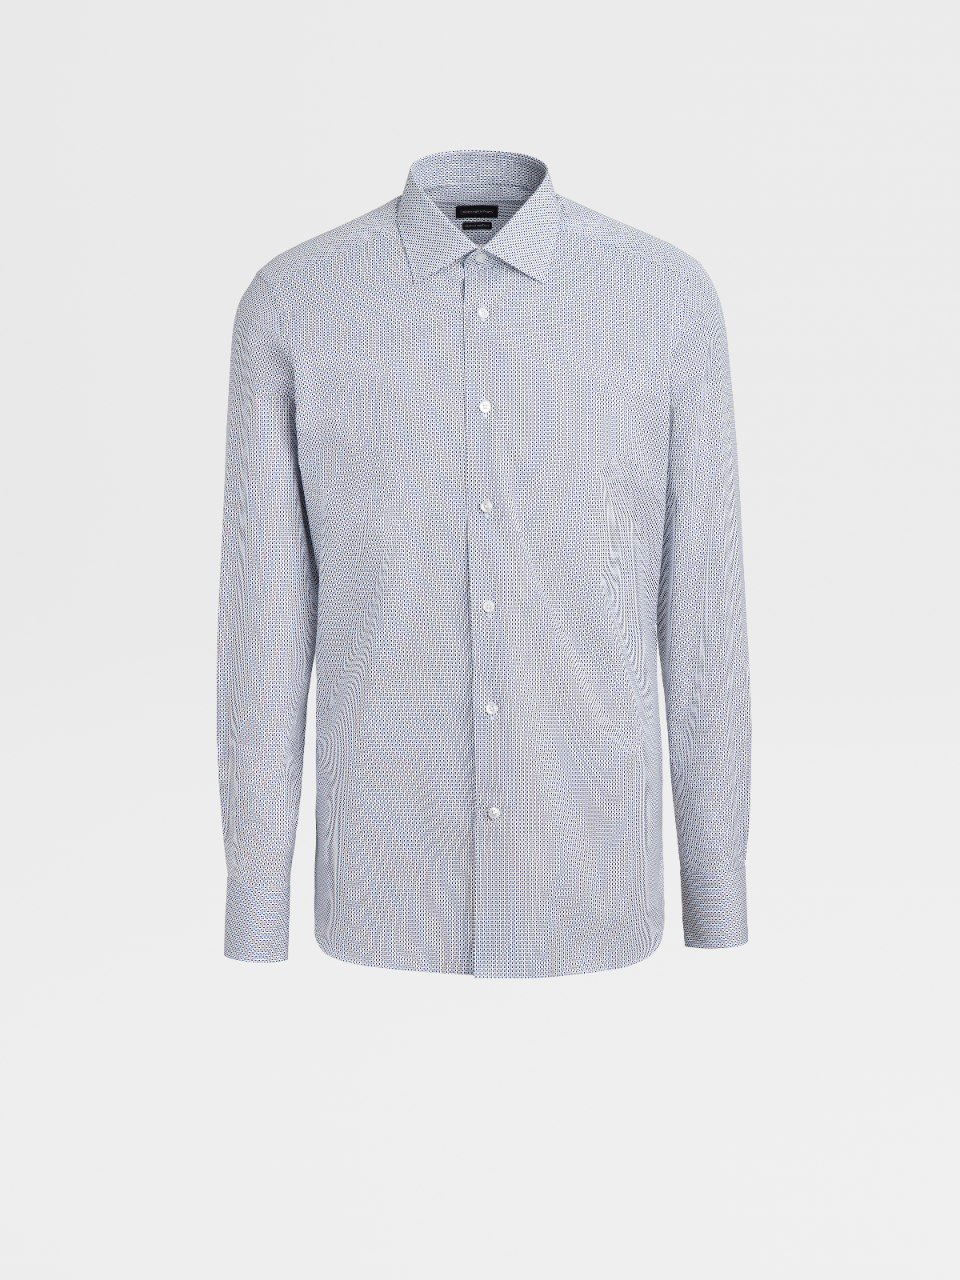 Trofeo Comfort Cotton Shirt